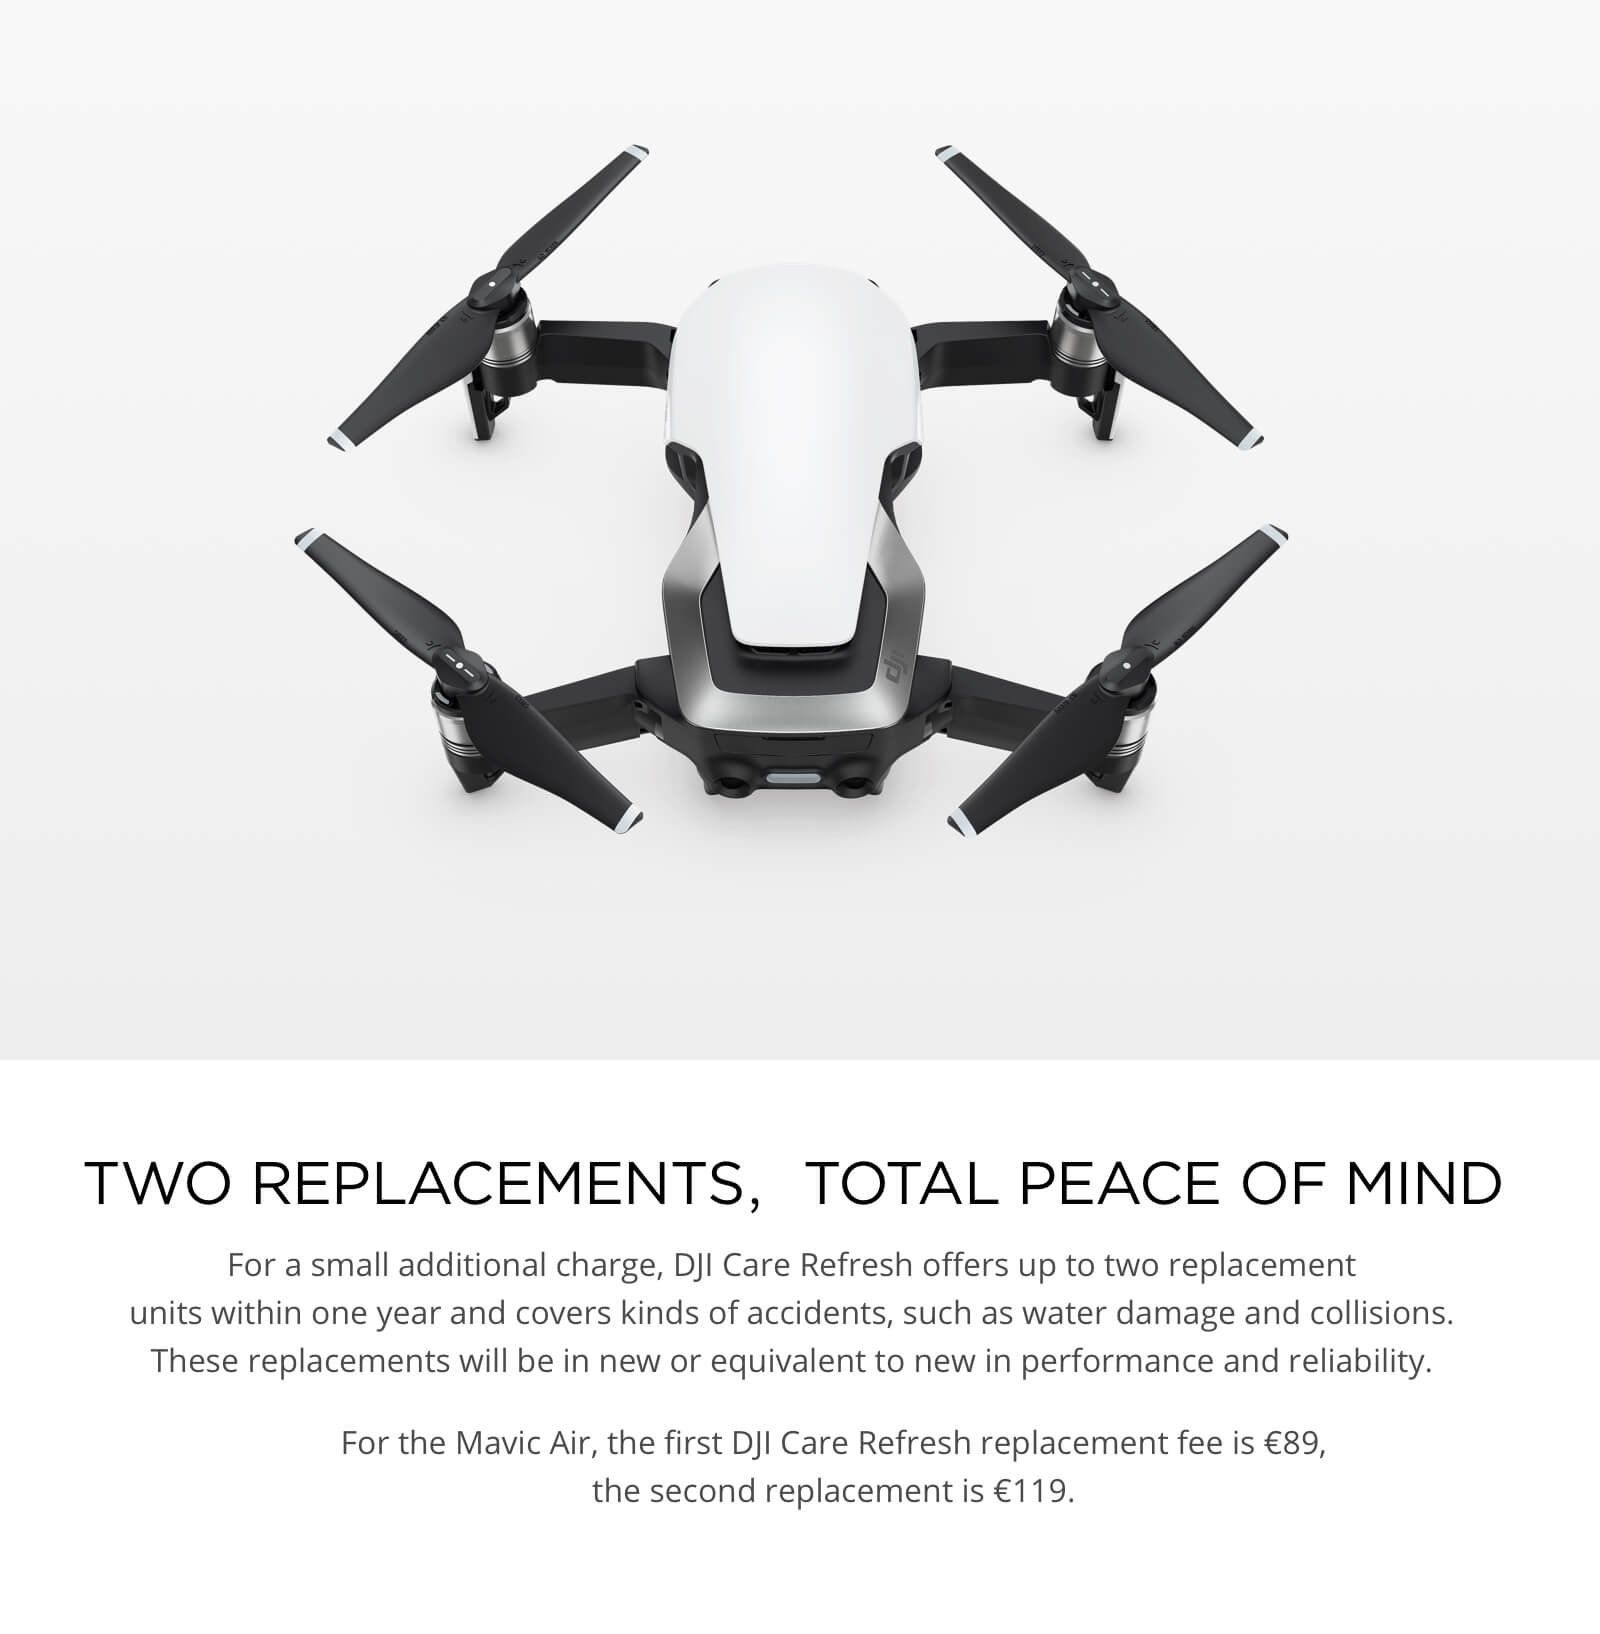 05Two%20Replacements%uFF0CTotal%20Peace%20of%20mind%20mavic%20air.jpg